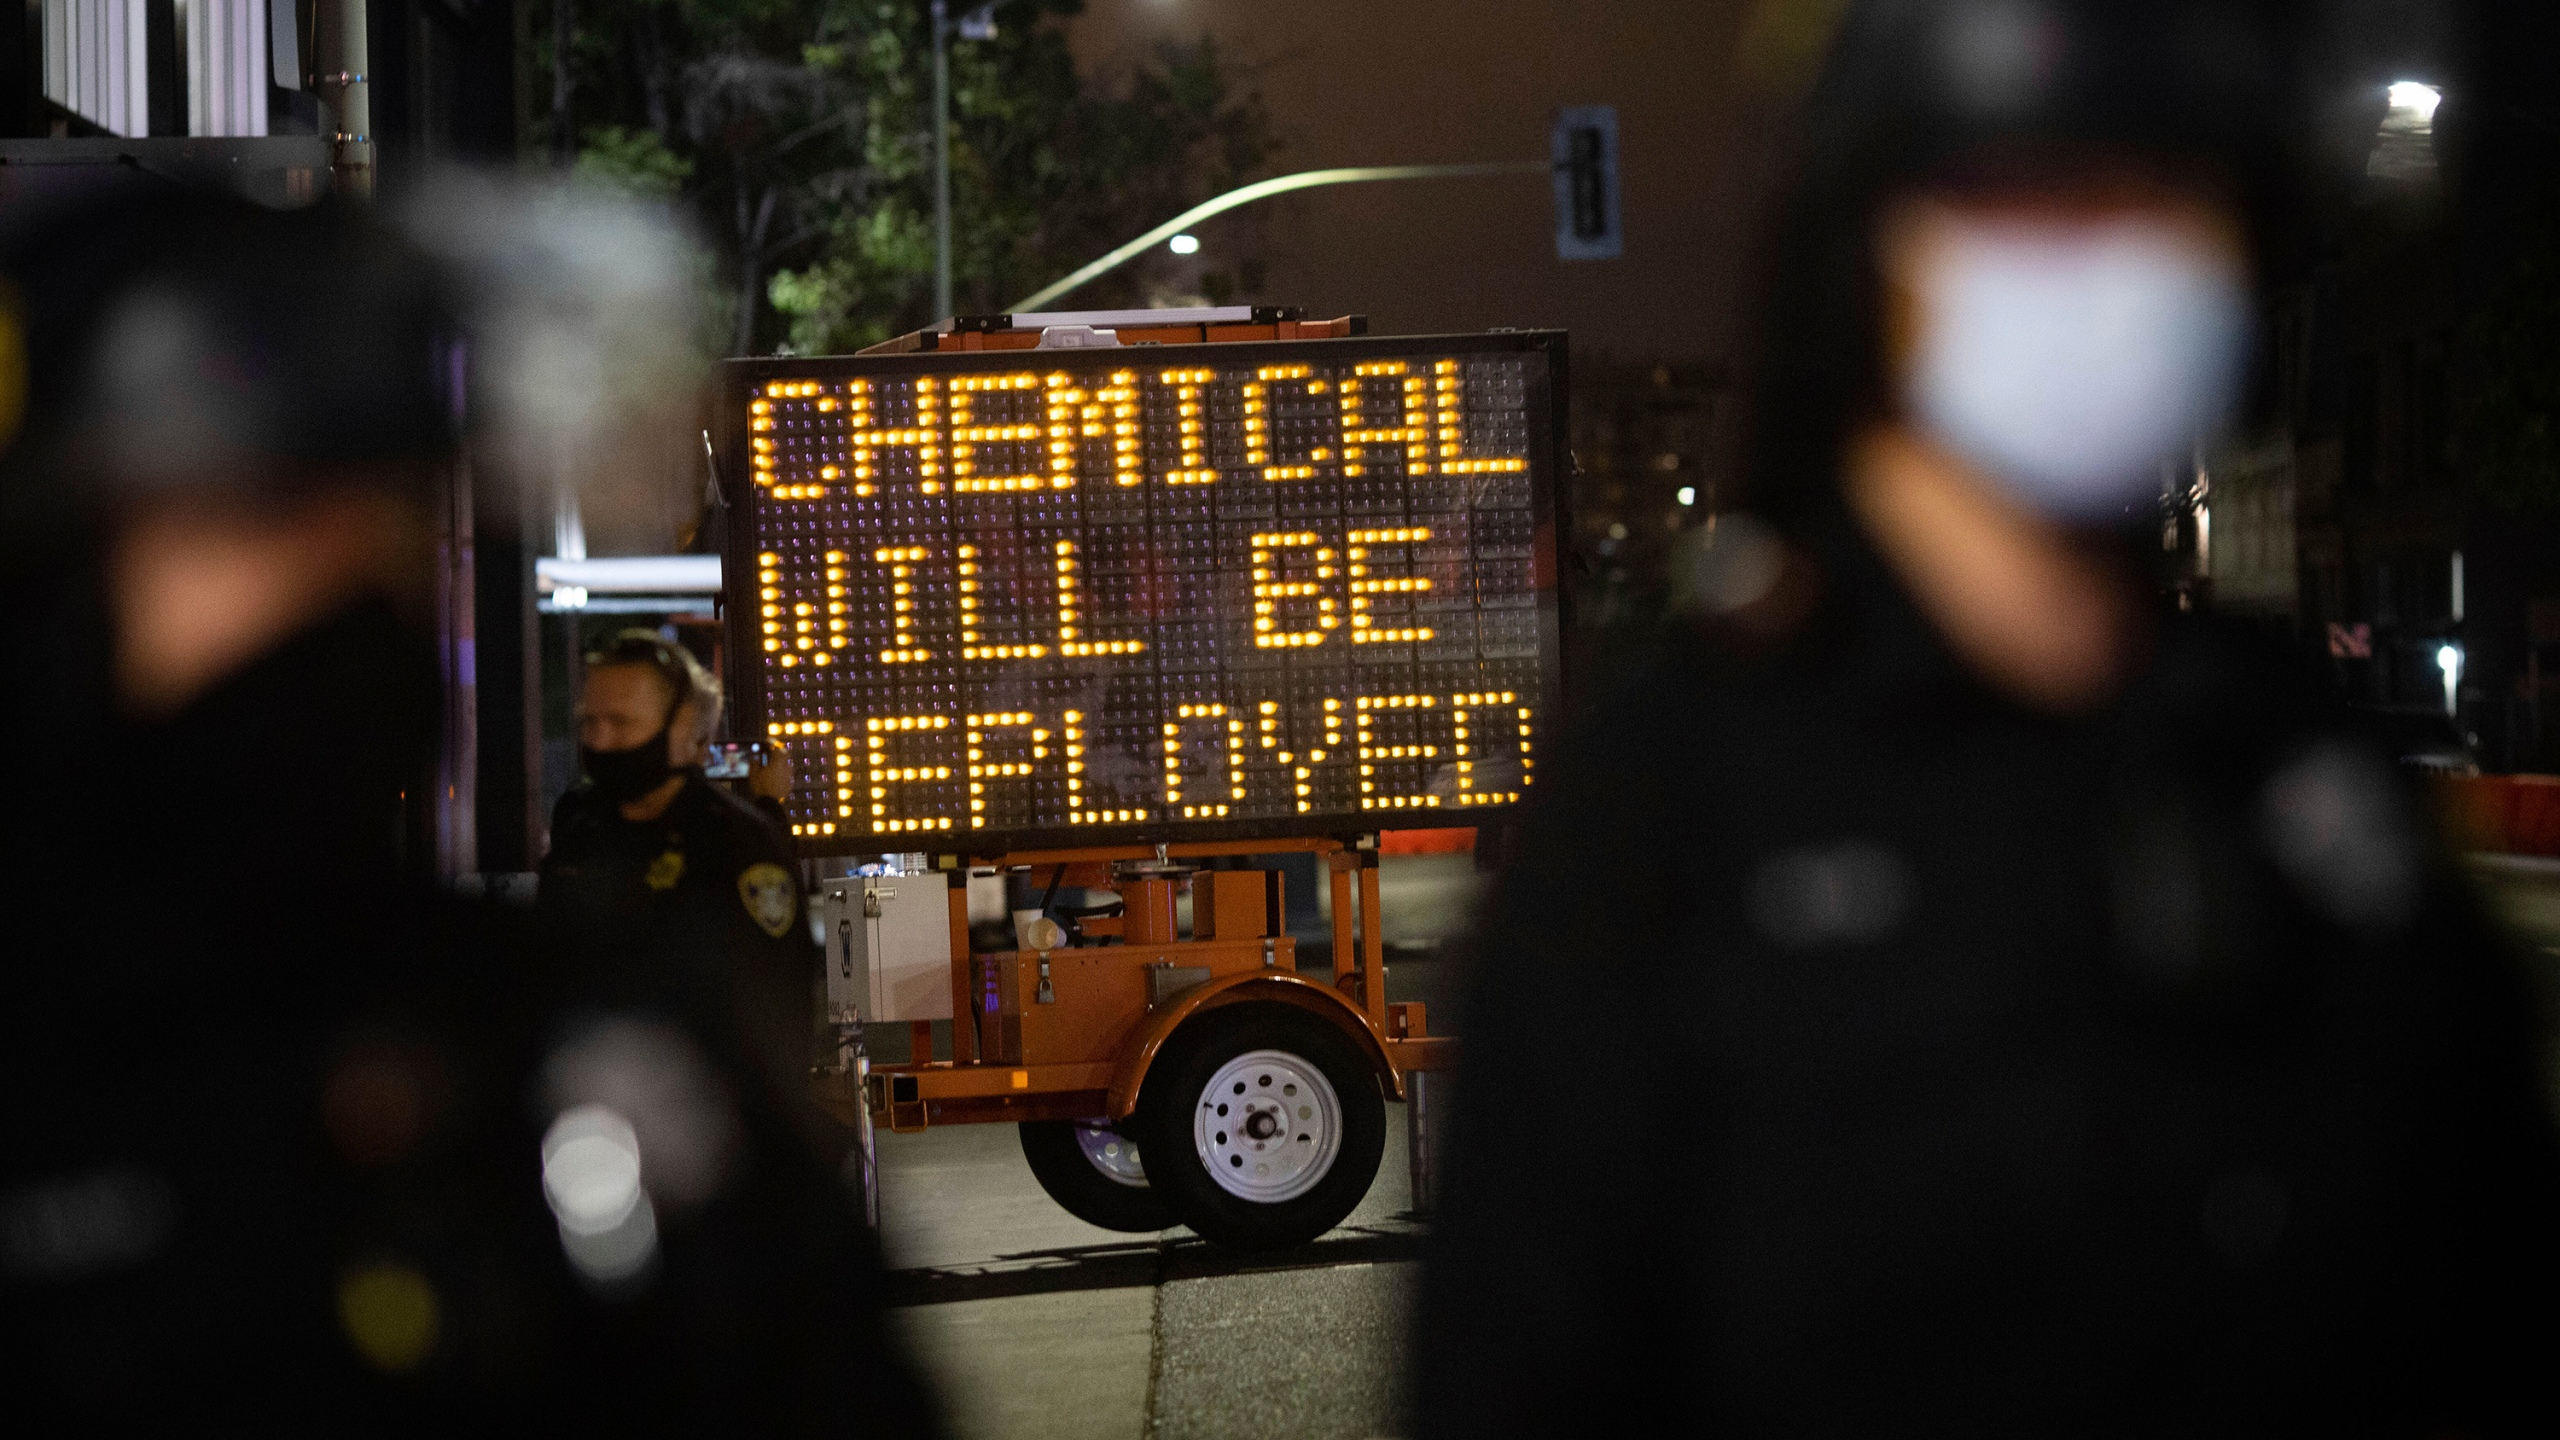 A road sign warns protesters of the use of chemical agents for failure to disperse after a protest was declared unlawful on Saturday, July 25, 2020, in Oakland. (AP Photo/Christian Monterrosa)